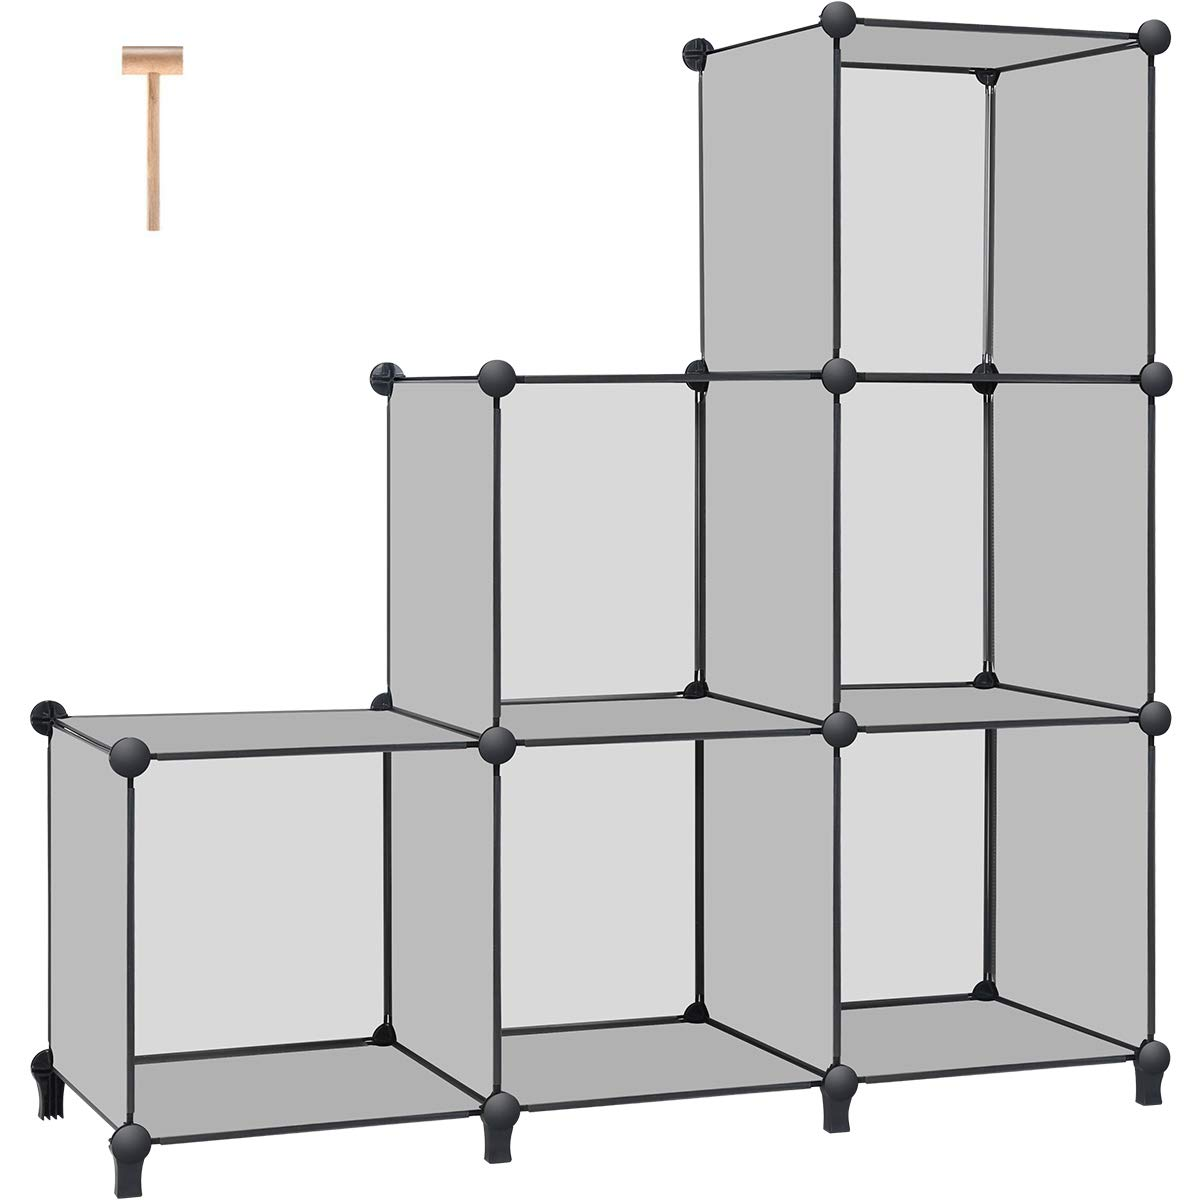 TomCare Cube Storage 6-Cube Book Shelf Storage Shelves Closet Organizer Cube Organizer Shelving Plastic Bookshelf Bookcase DIY Closet Cabinet Organizers Shelves for Bedroom Office Living Room, Grey